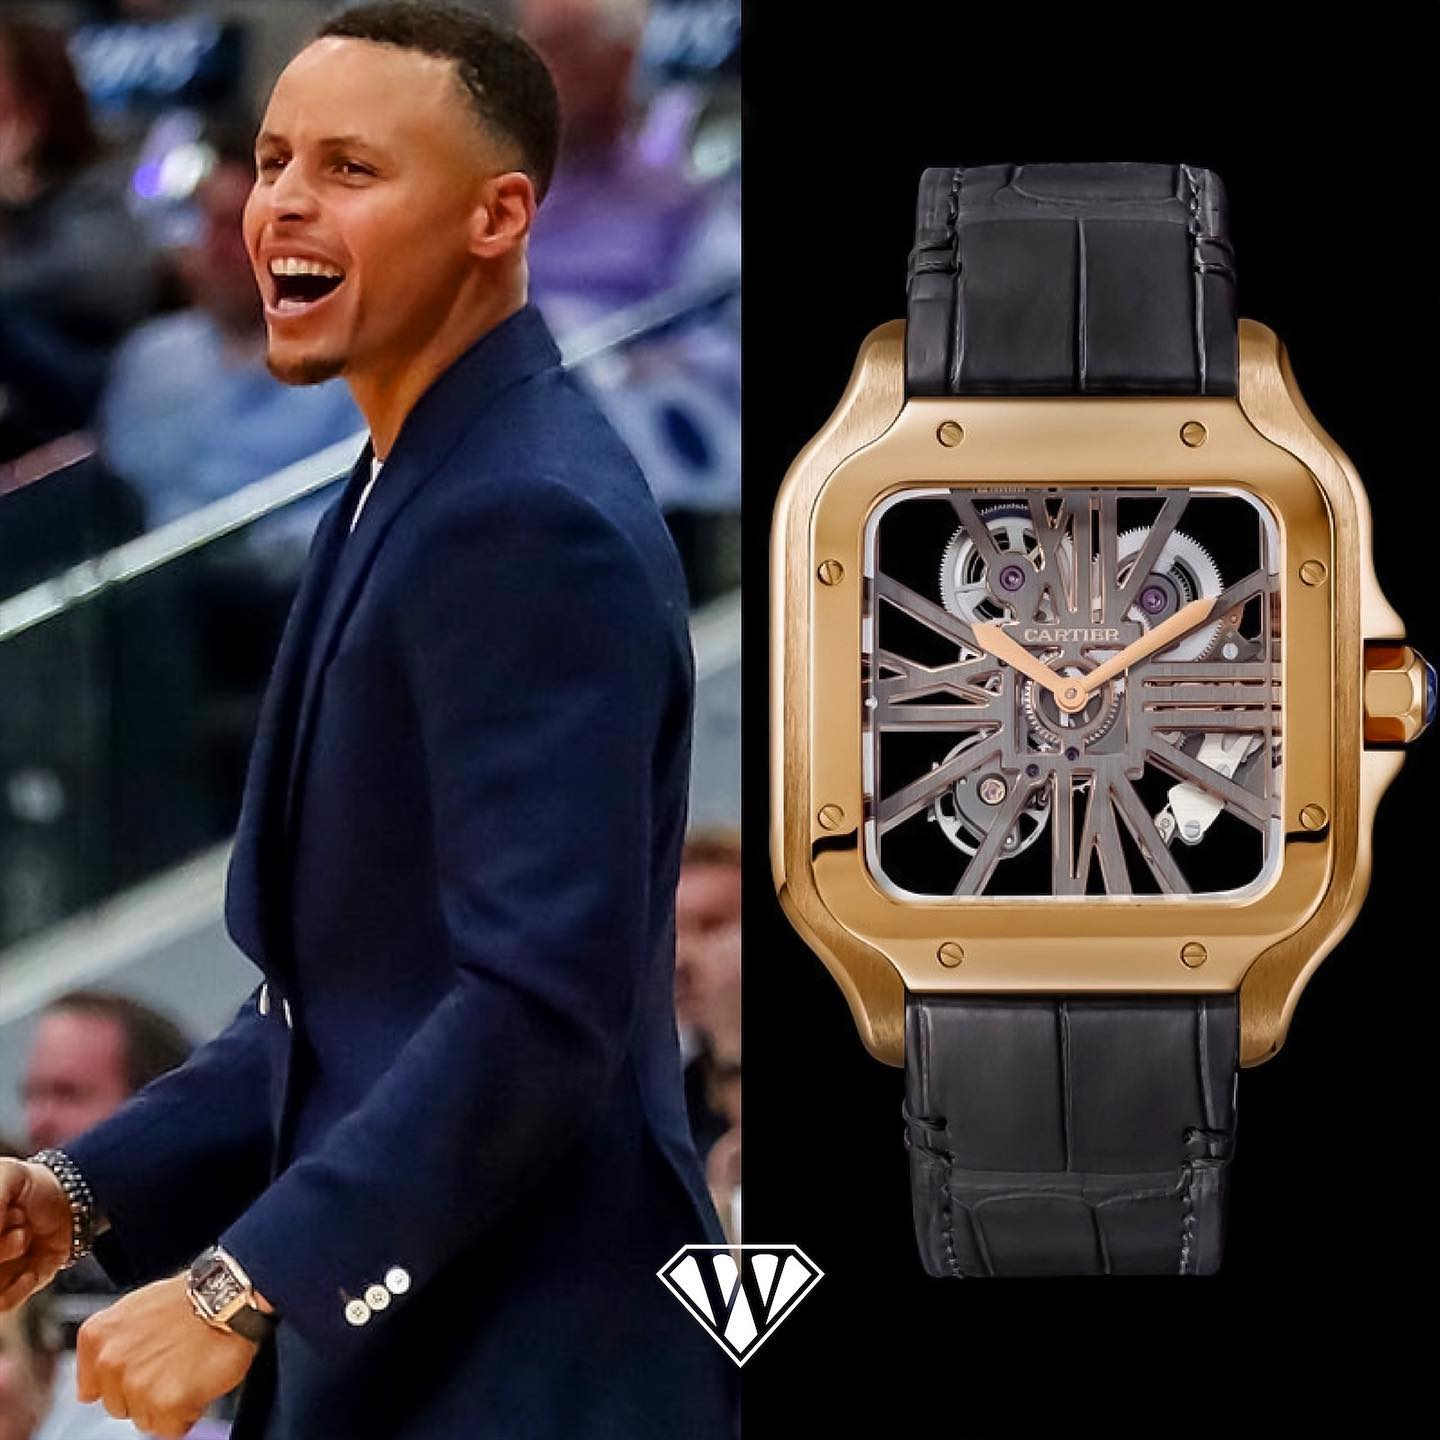 The American basketball star Stephen Curry, who plays for the NBA team Golden State Warriors, is sporting an 18k rose gold Santos de Skeleton. Curry is regarded by many to be the greatest shooter in NBA history. Retail price: $63,500.00 dollars Reference: WHSA0008